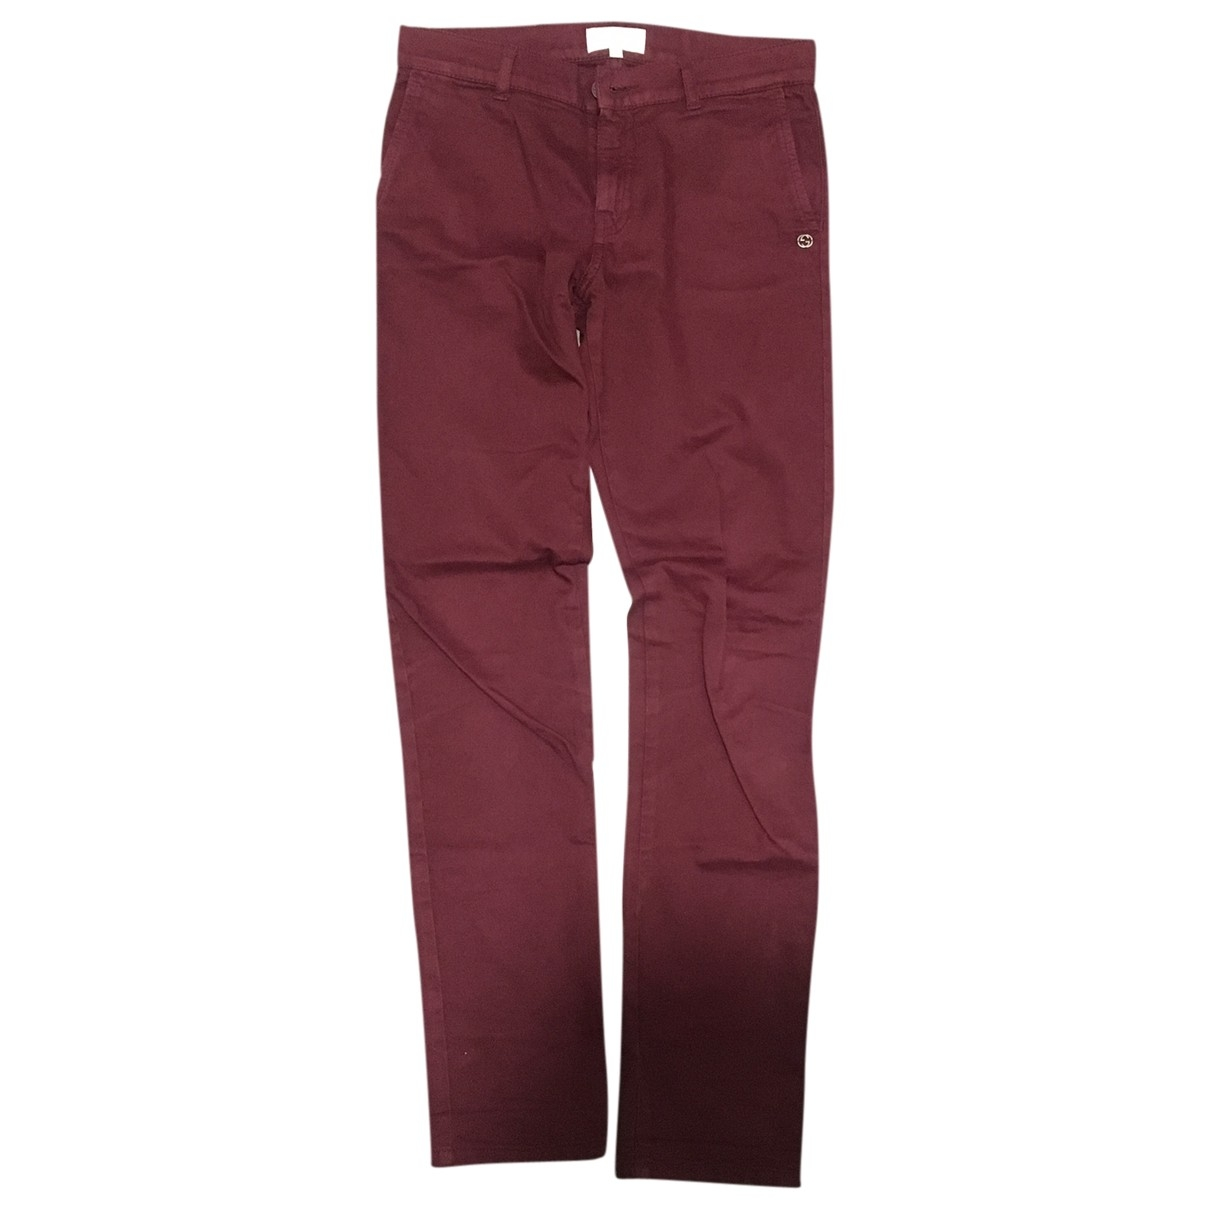 Gucci \N Burgundy Cotton Trousers for Kids 10 years - up to 142cm FR